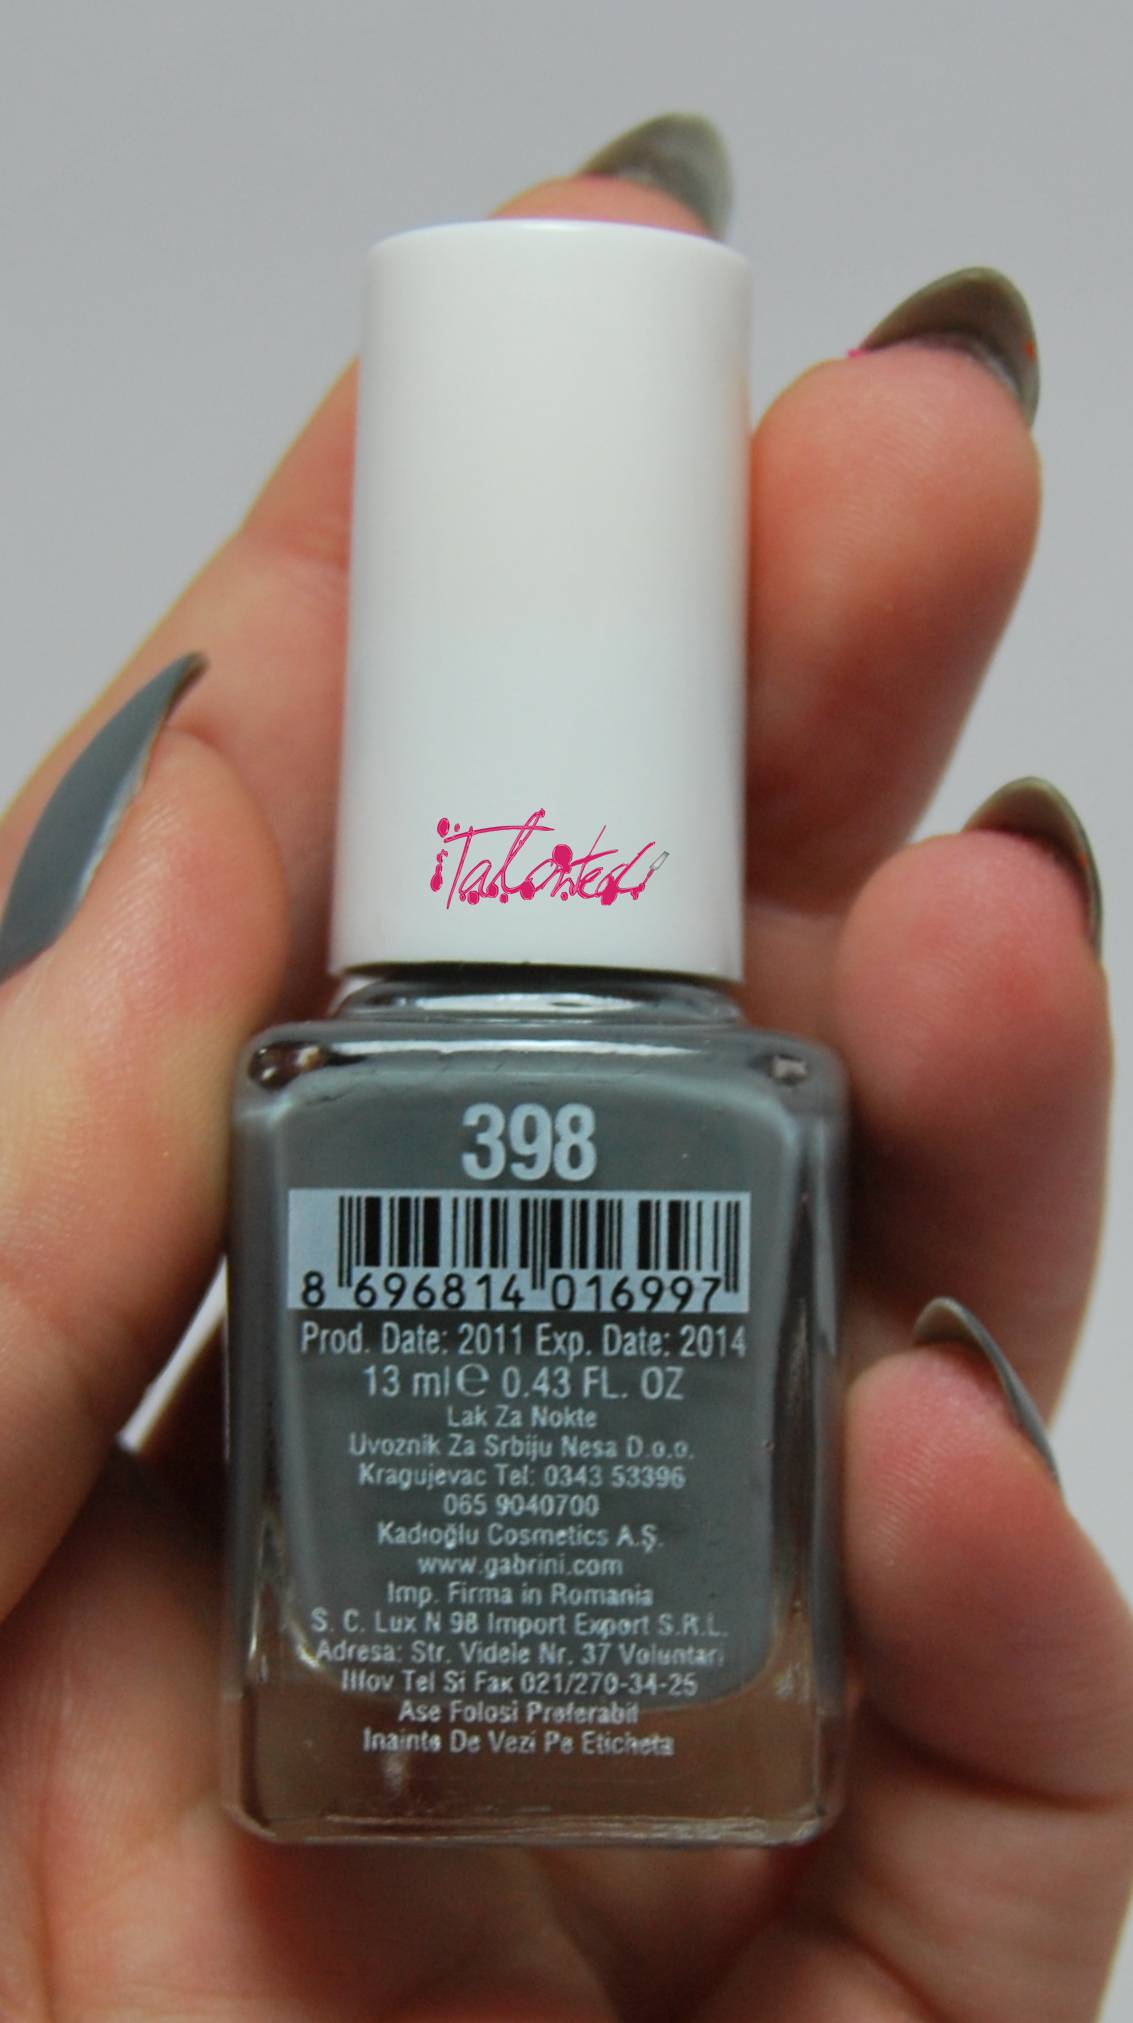 Gabrini 398 Nail Varnish Review